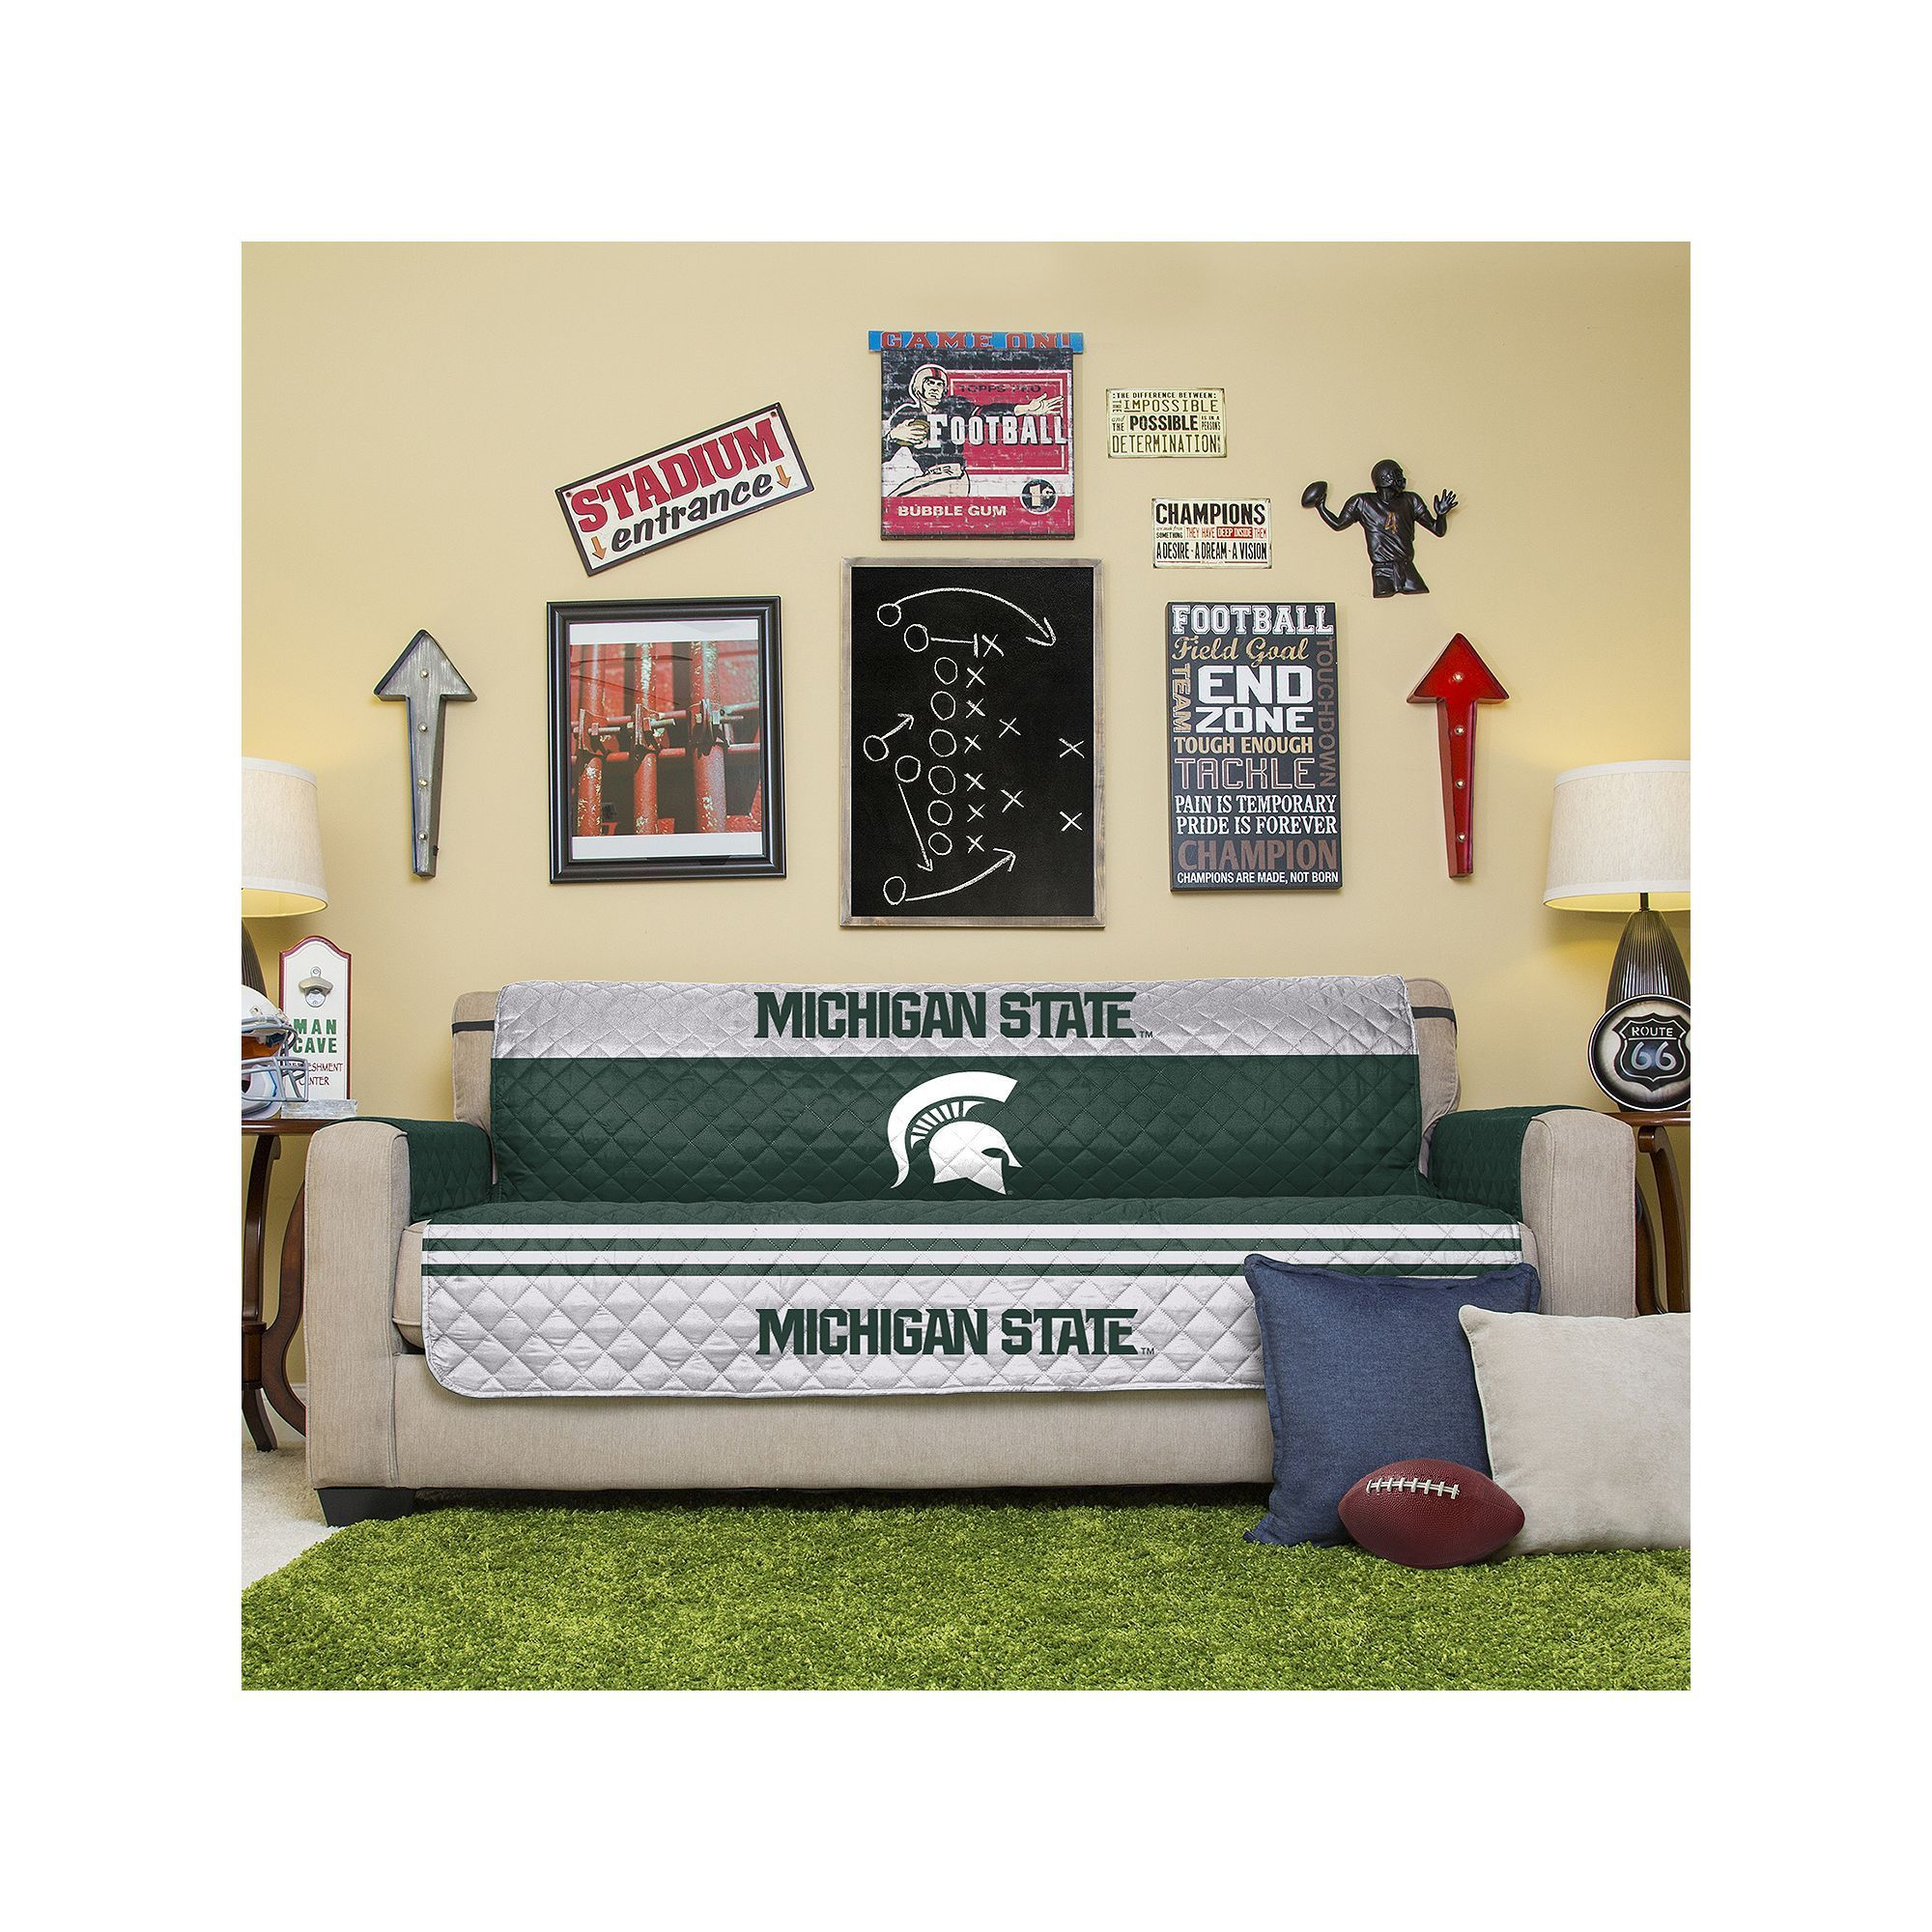 Swell Michigan State Spartans Quilted Sofa Cover In 2019 Andrewgaddart Wooden Chair Designs For Living Room Andrewgaddartcom